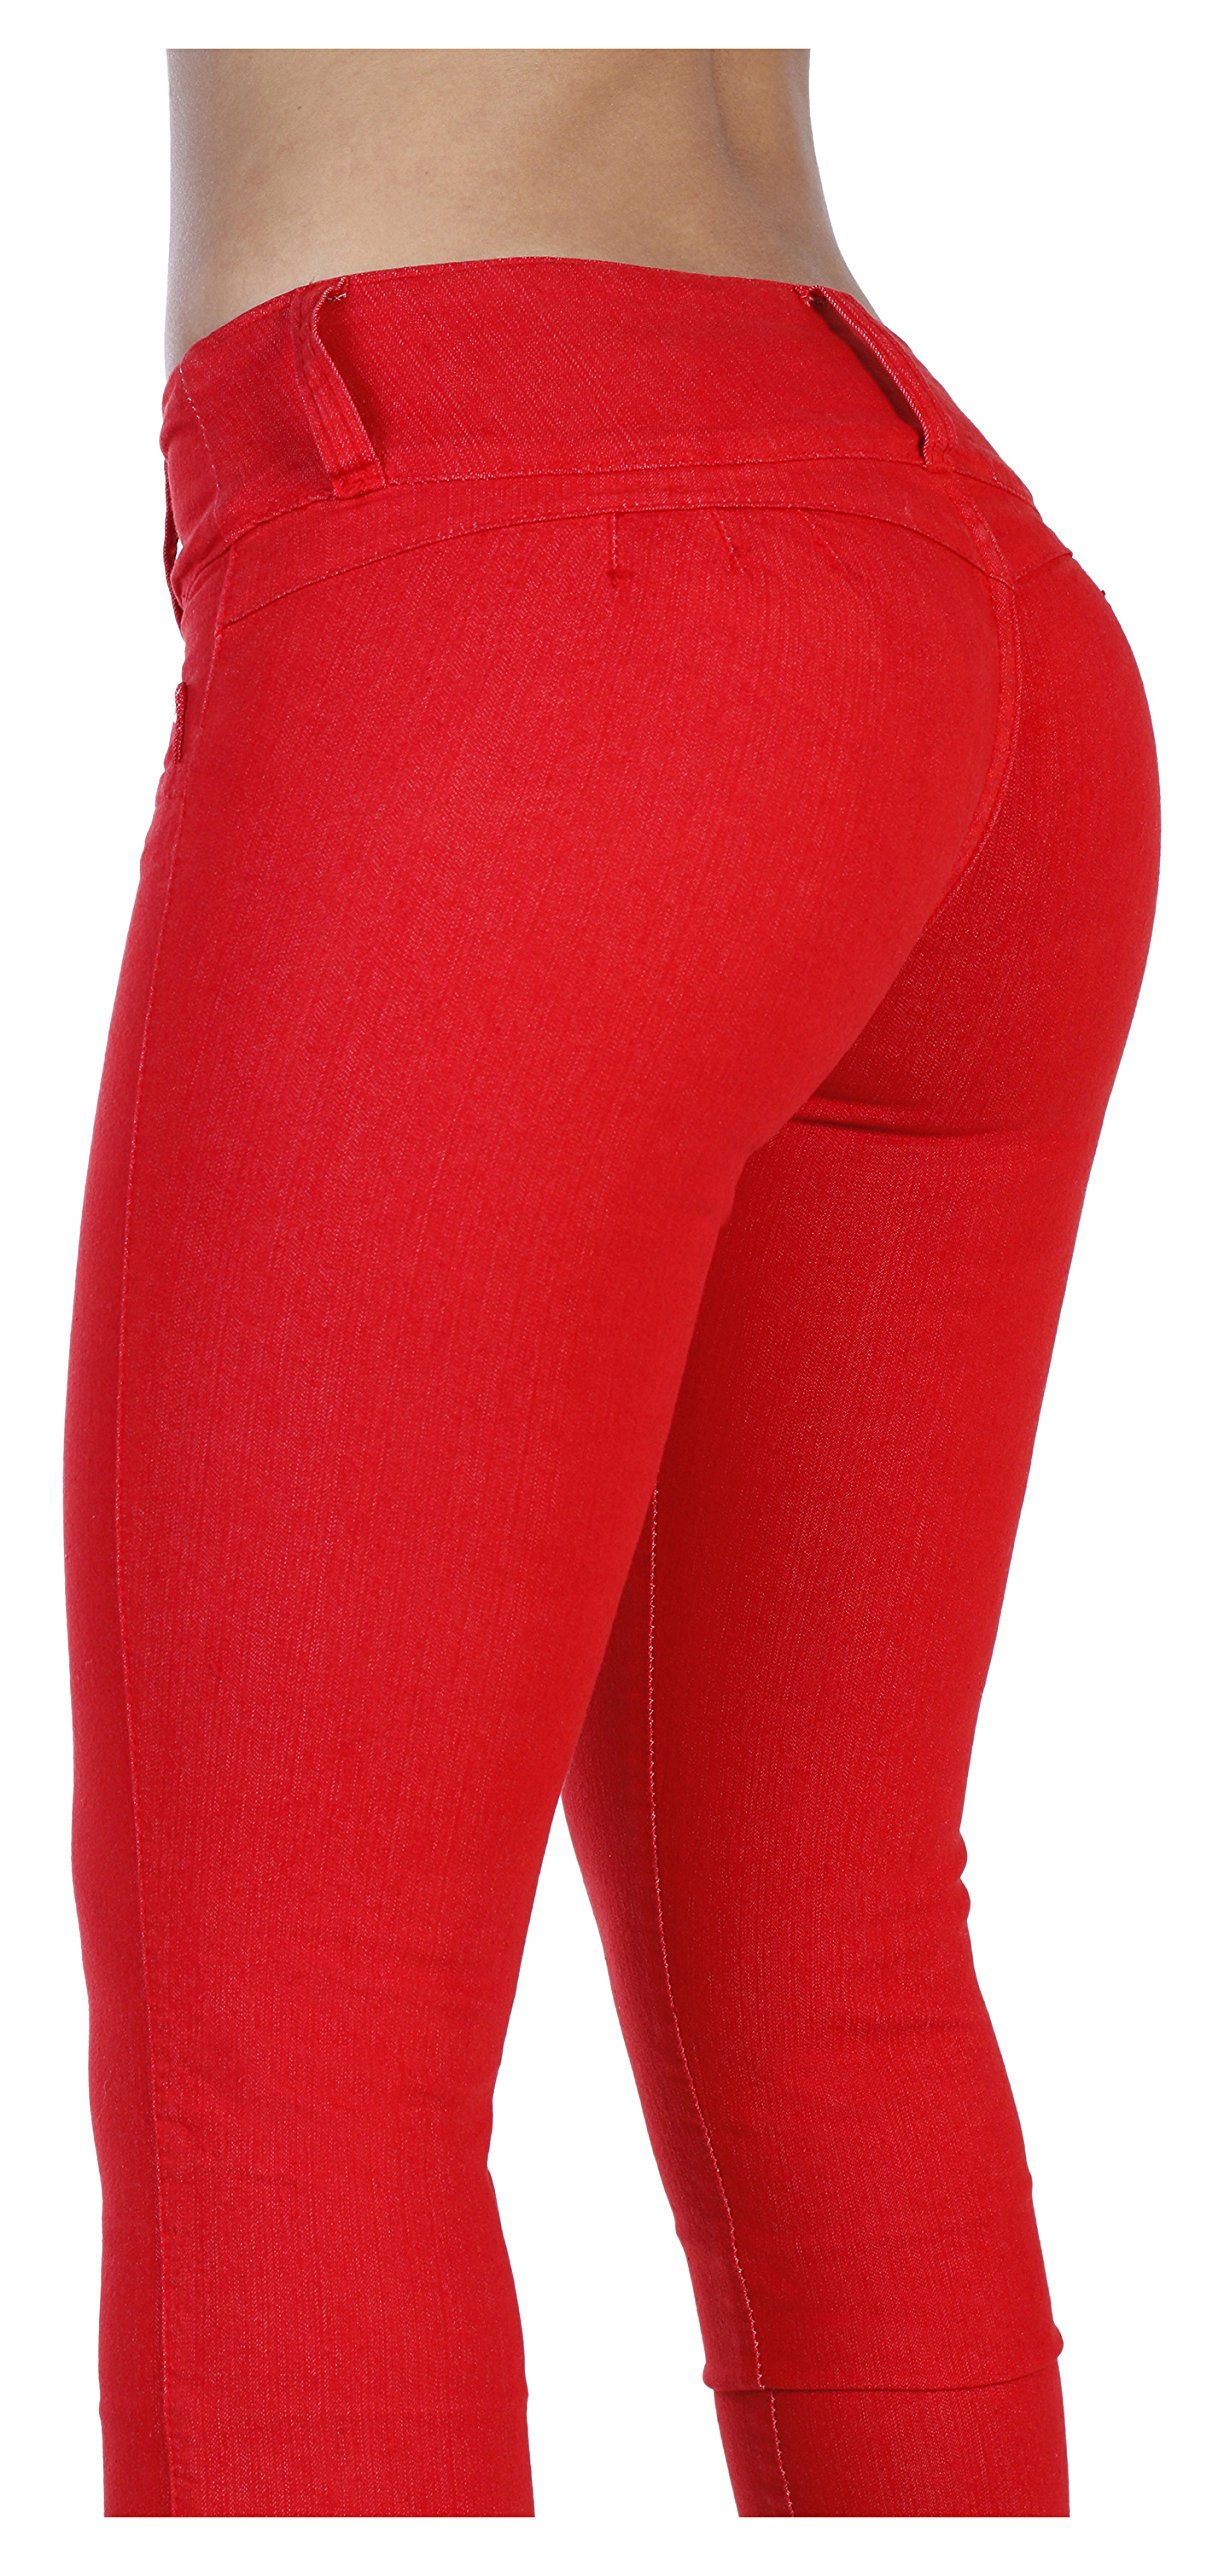 Curvify 764 Women's Butt-Lifting Skinny Jeans | High-Rise Waist, Brazilian Style Red 13